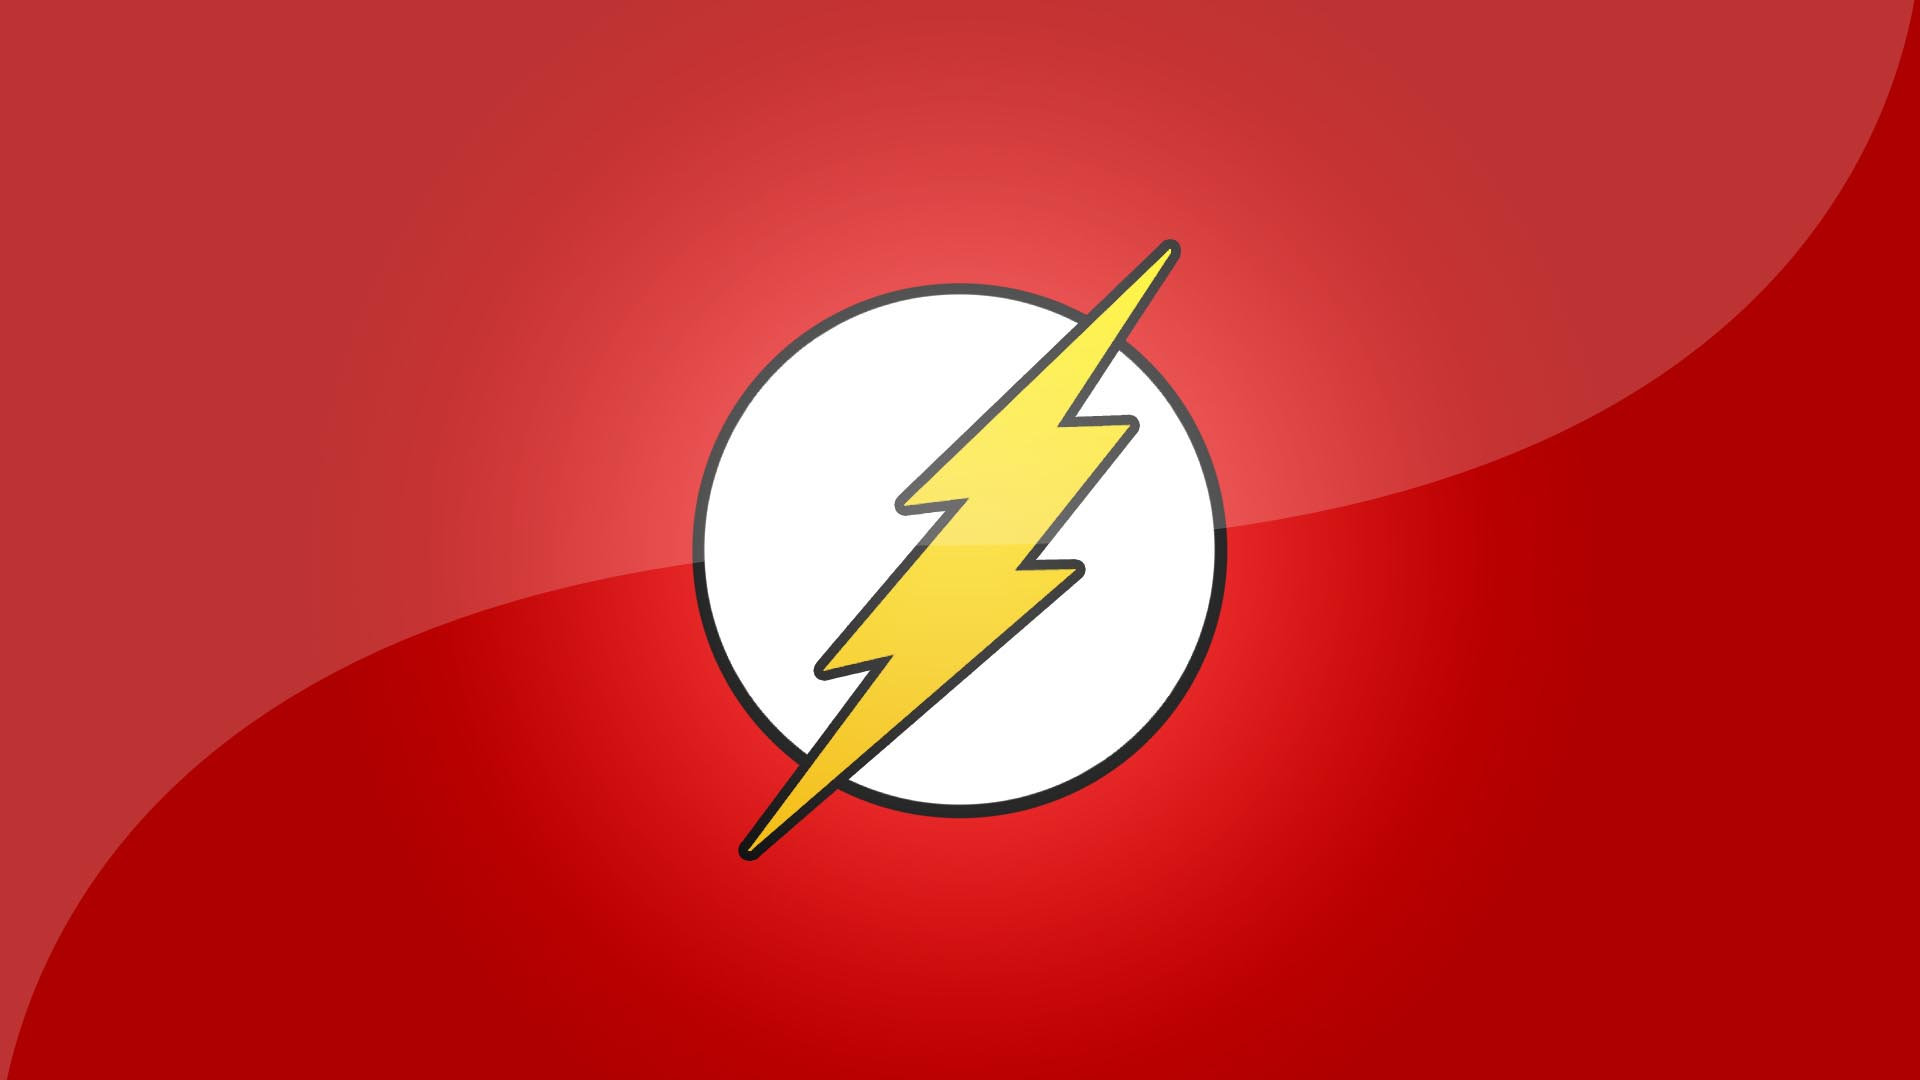 The Flash HD Wallpaper FullHDWpp   Full HD Wallpapers 1920x1080 1920x1080